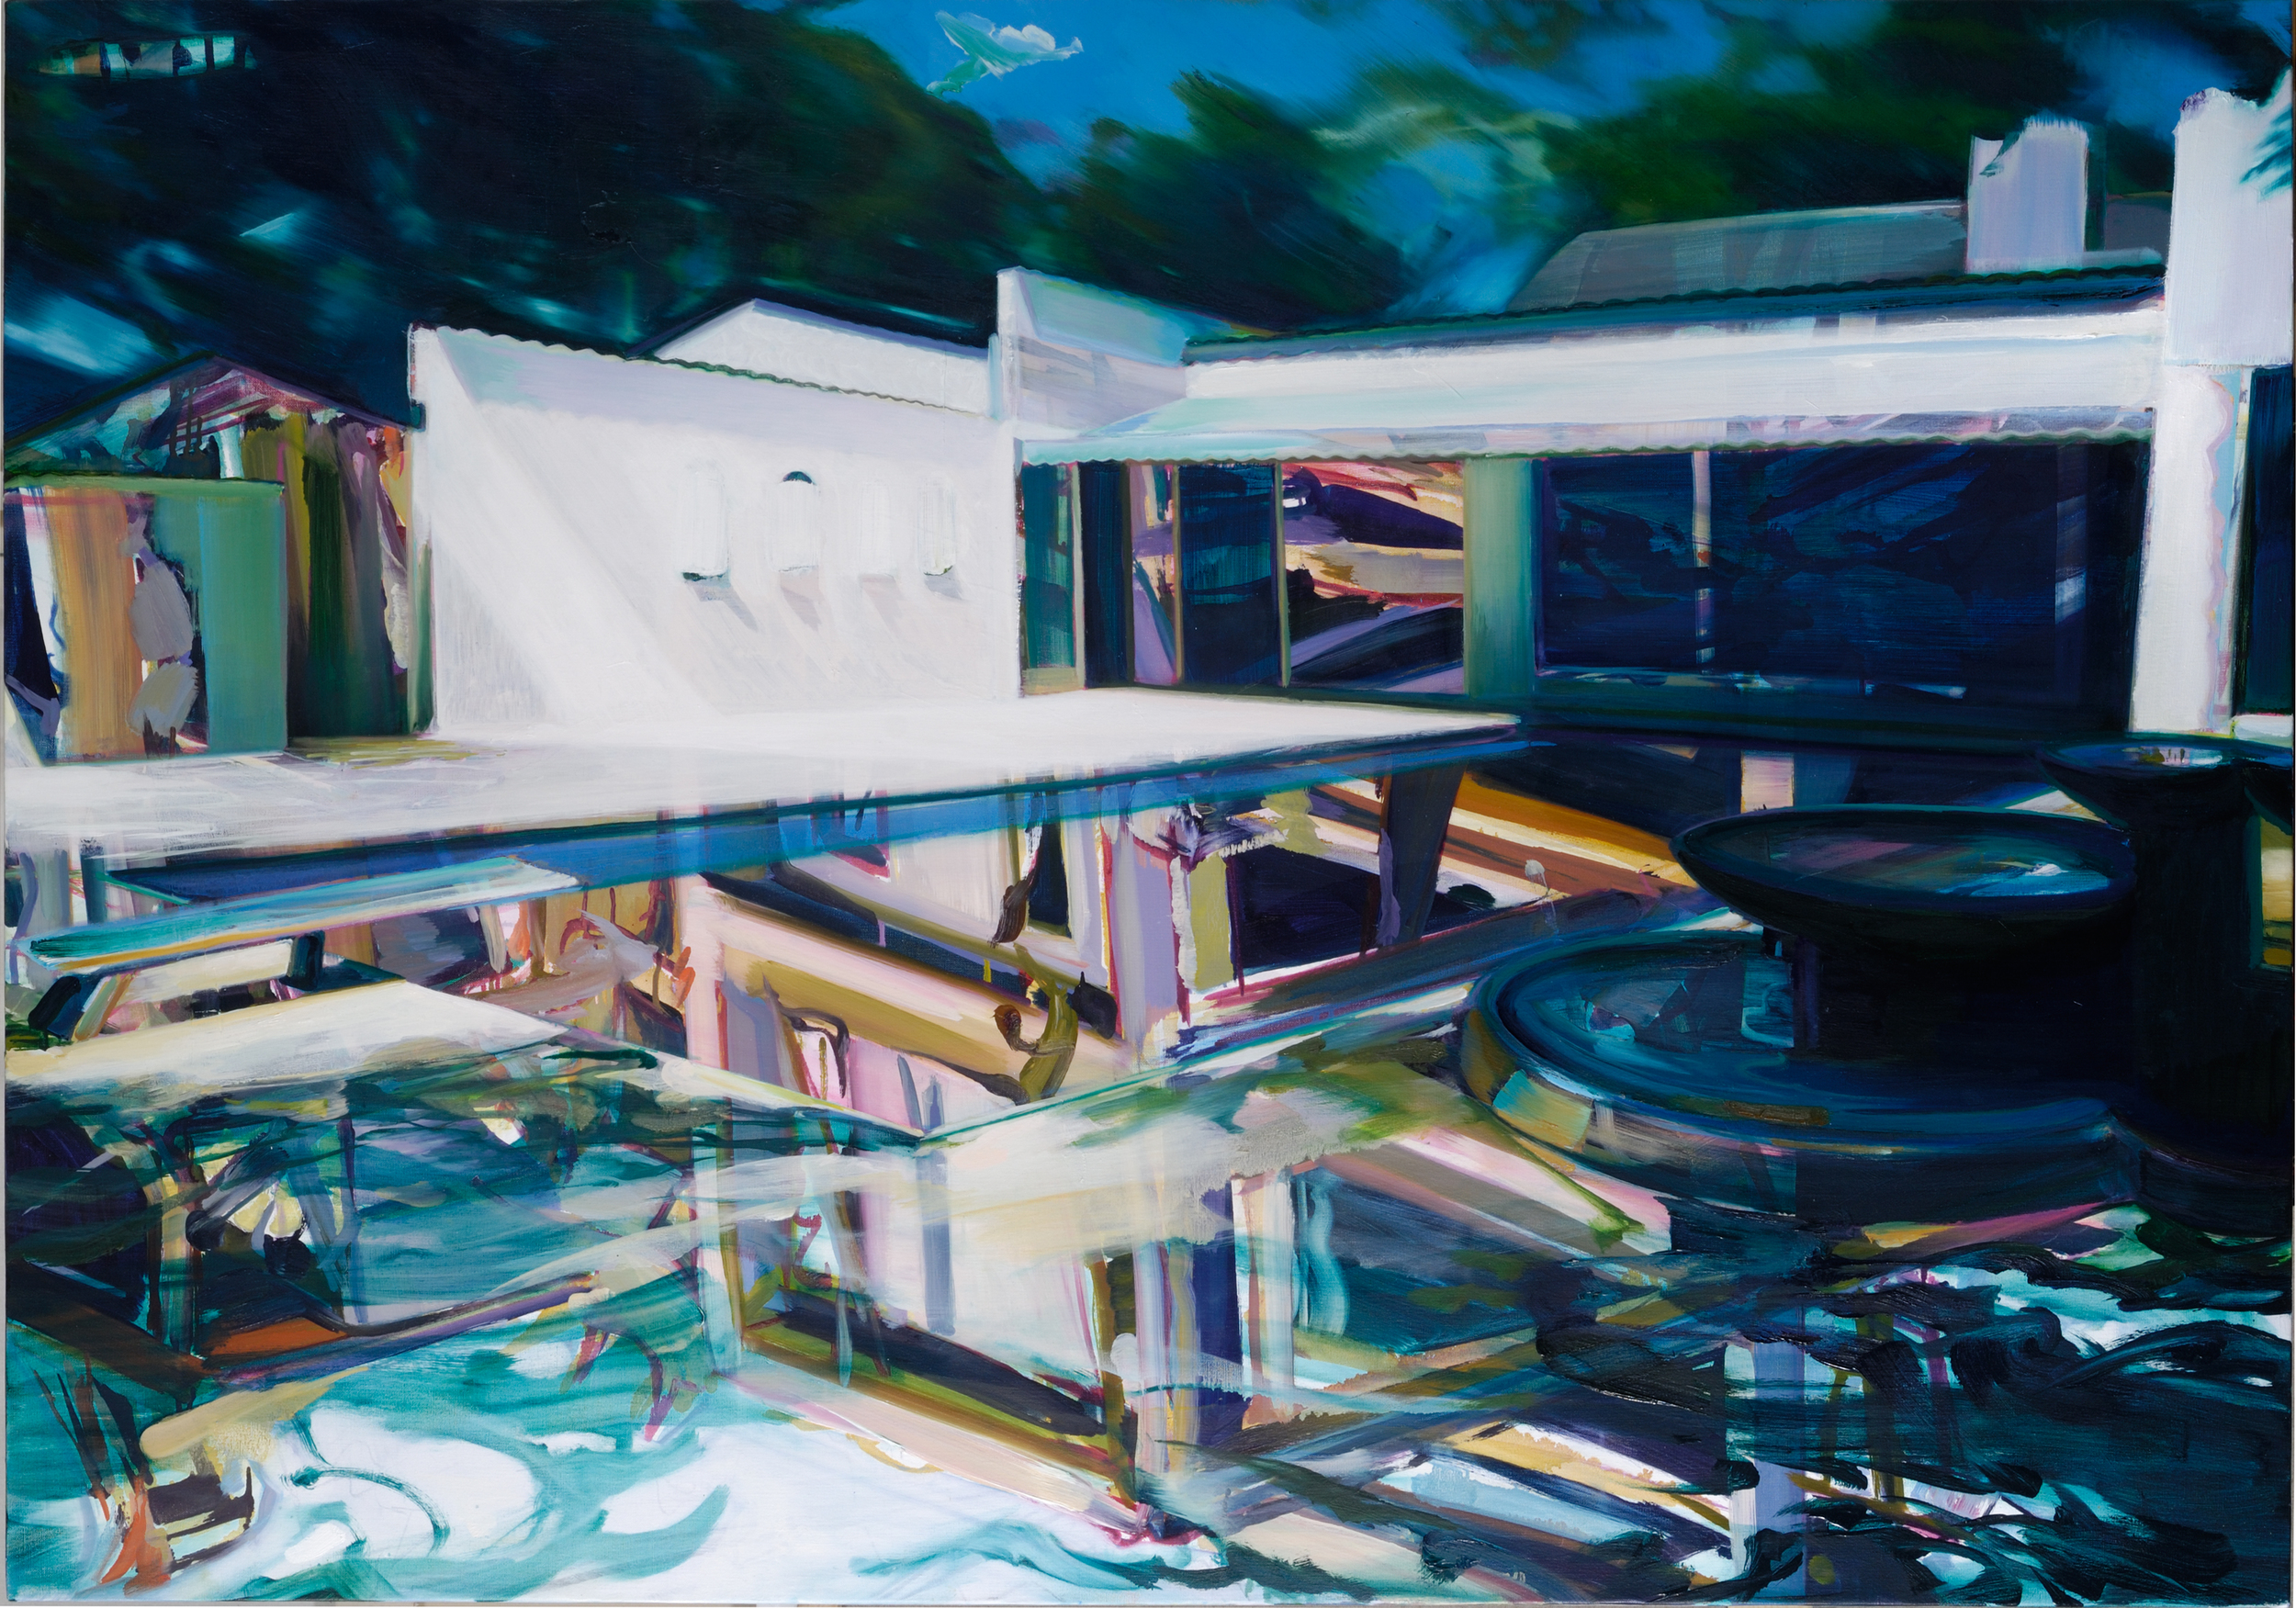 Poolside , 2008, oil on canvas, 114 x 162cm. Private collection, France